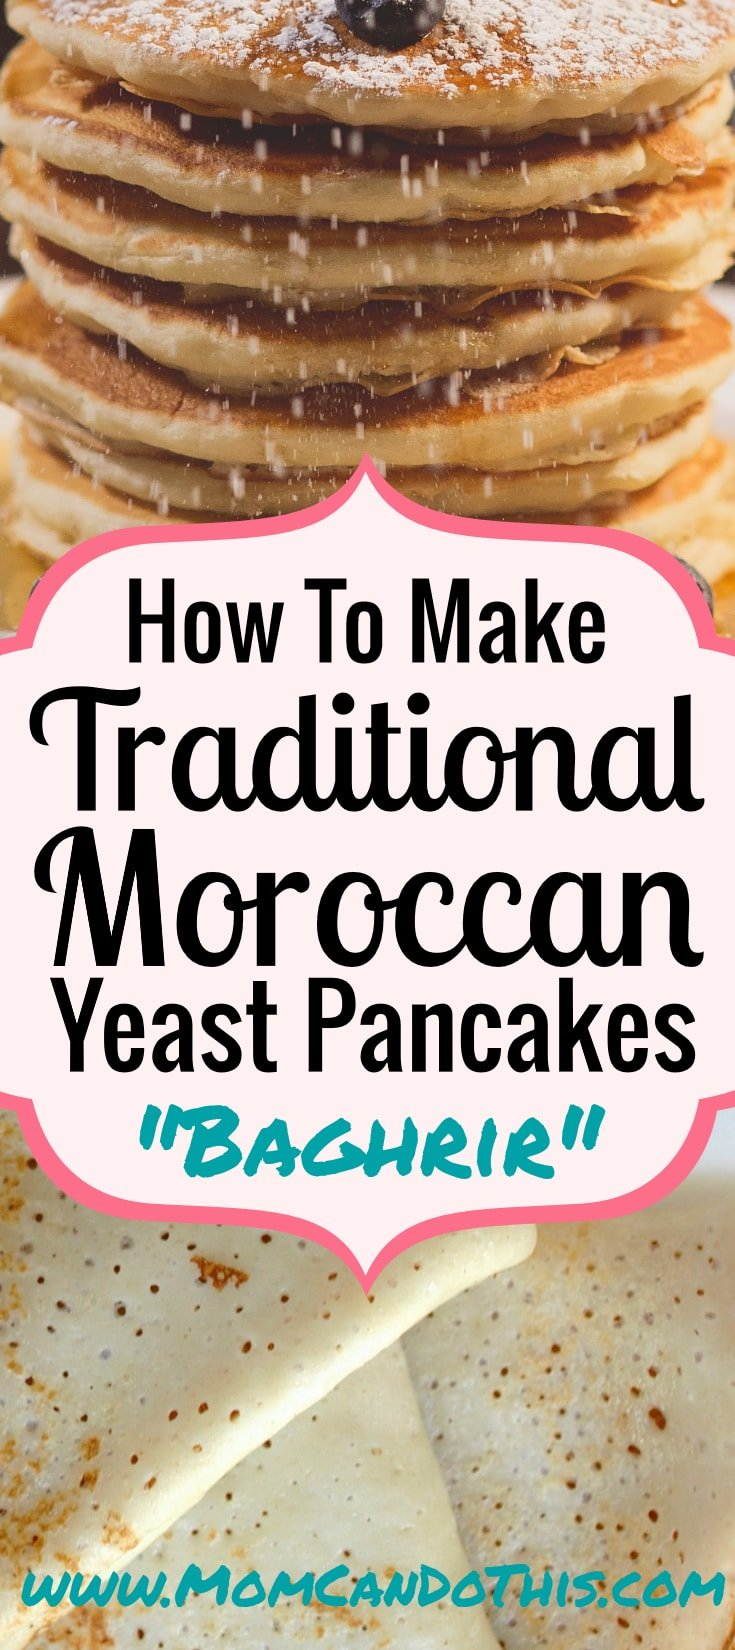 Baghrir Marocain Recipe! THE Traditional Moroccan Food, sweet, fluffy, drizzled with butter and honey! Too good to miss. Click through for a original recipe, a video, and a recipe printable!